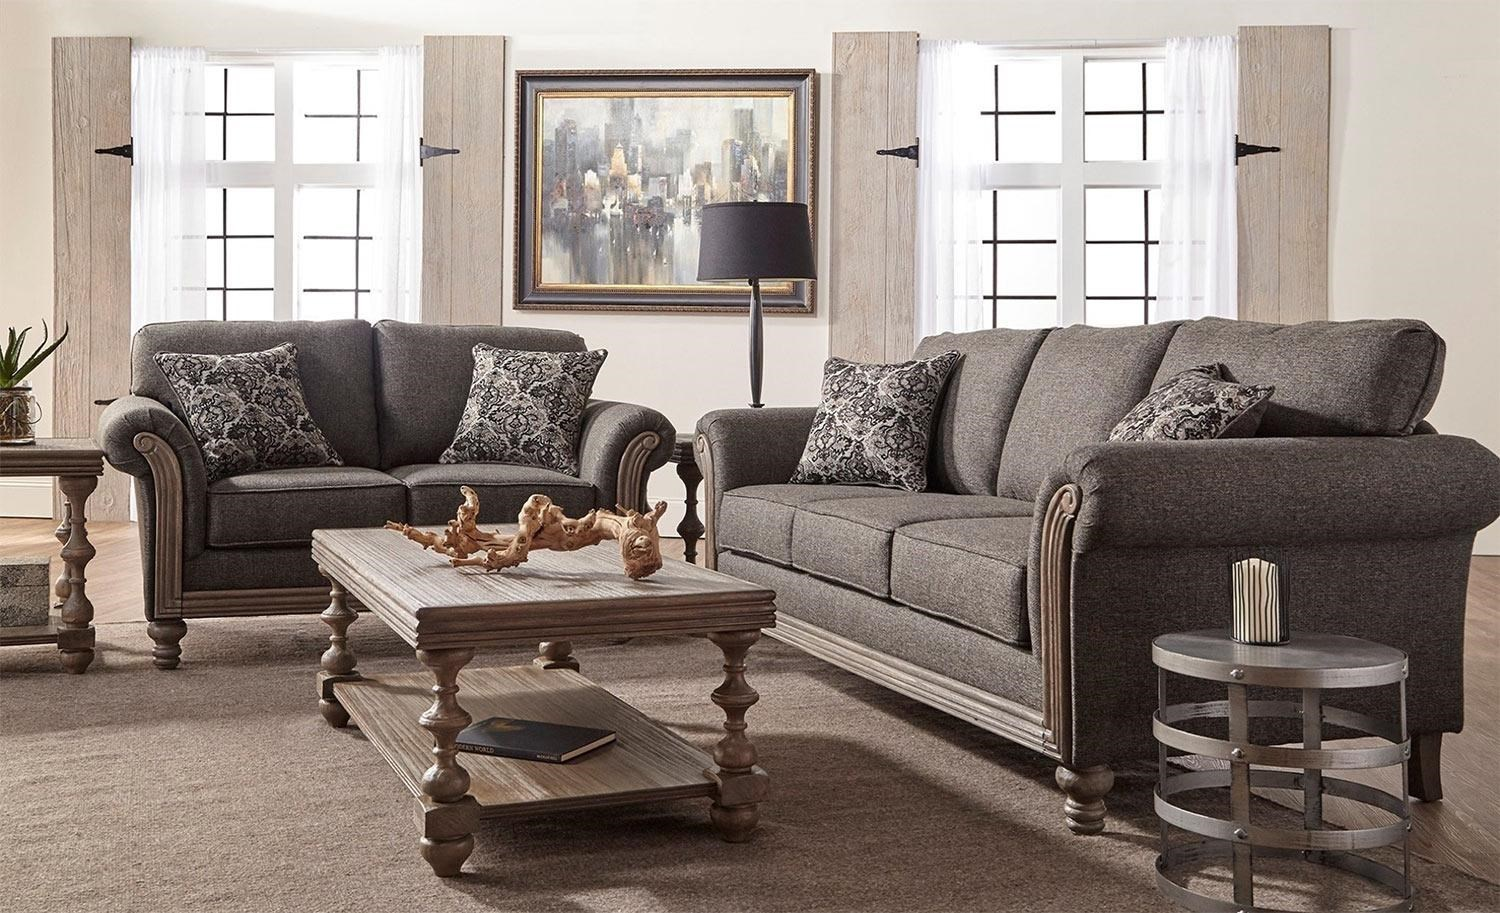 Serta Upholstery Belmont 2PC Sofa U0026 Loveseat Set